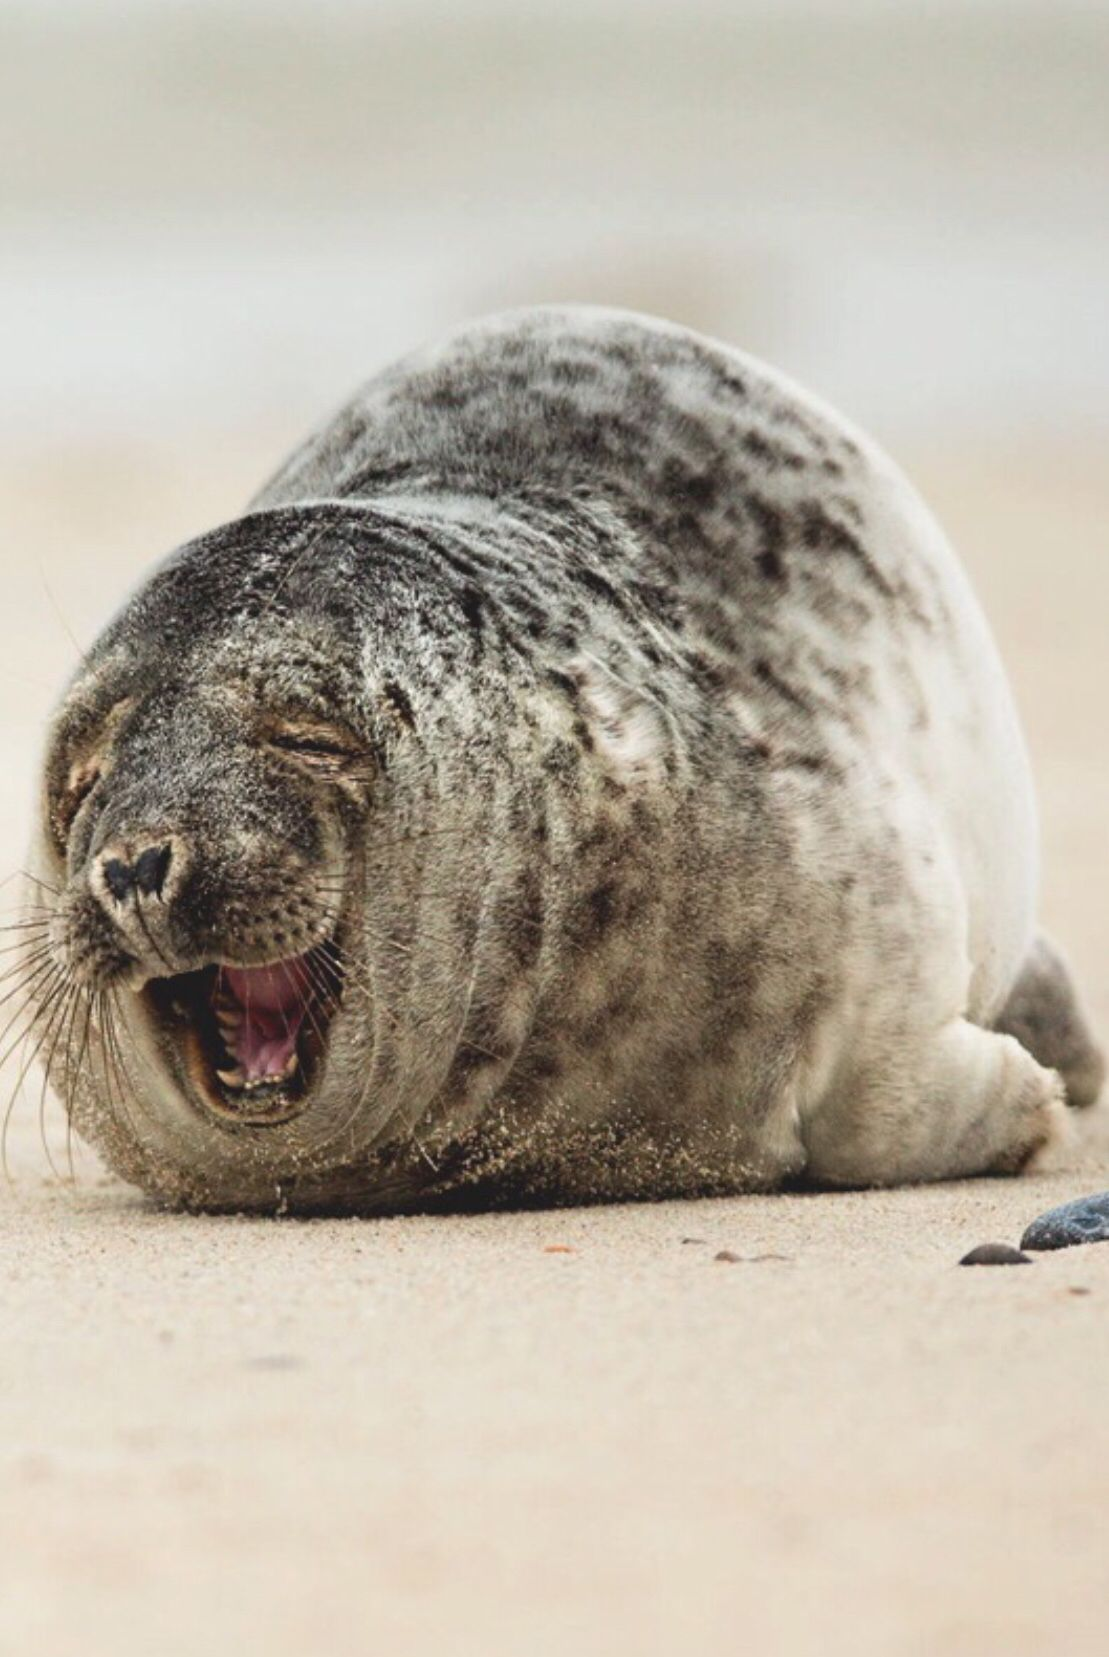 Laughing Seal | The Lens ... | Pinterest | Animals, Nature ... - photo#39